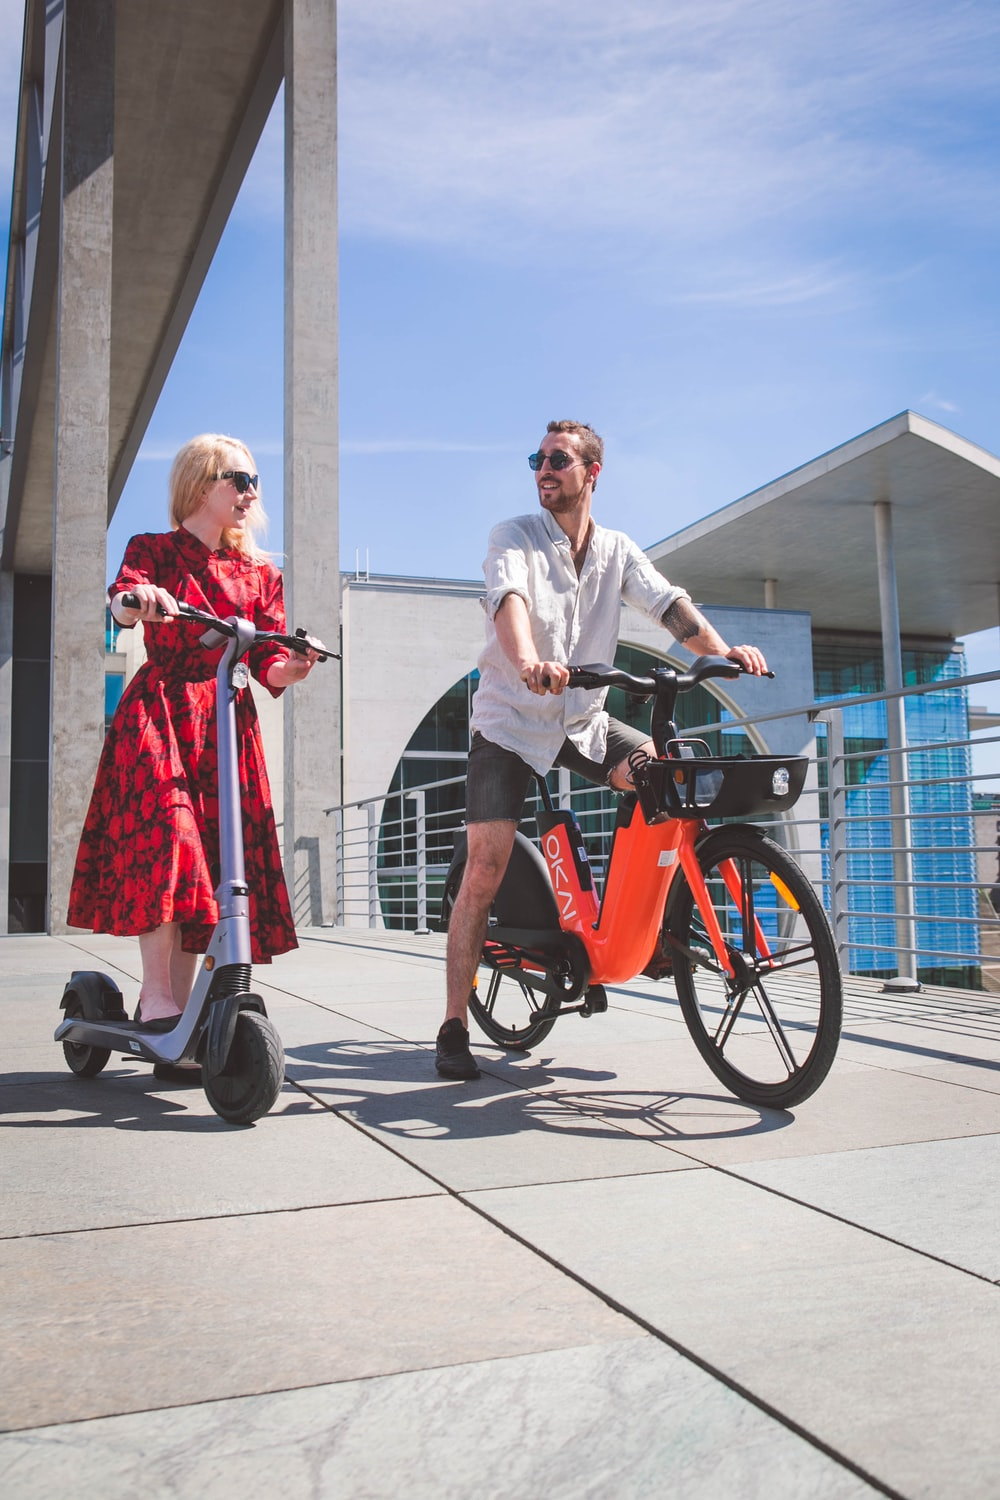 man in white dress shirt and woman in red dress riding on red and black trike